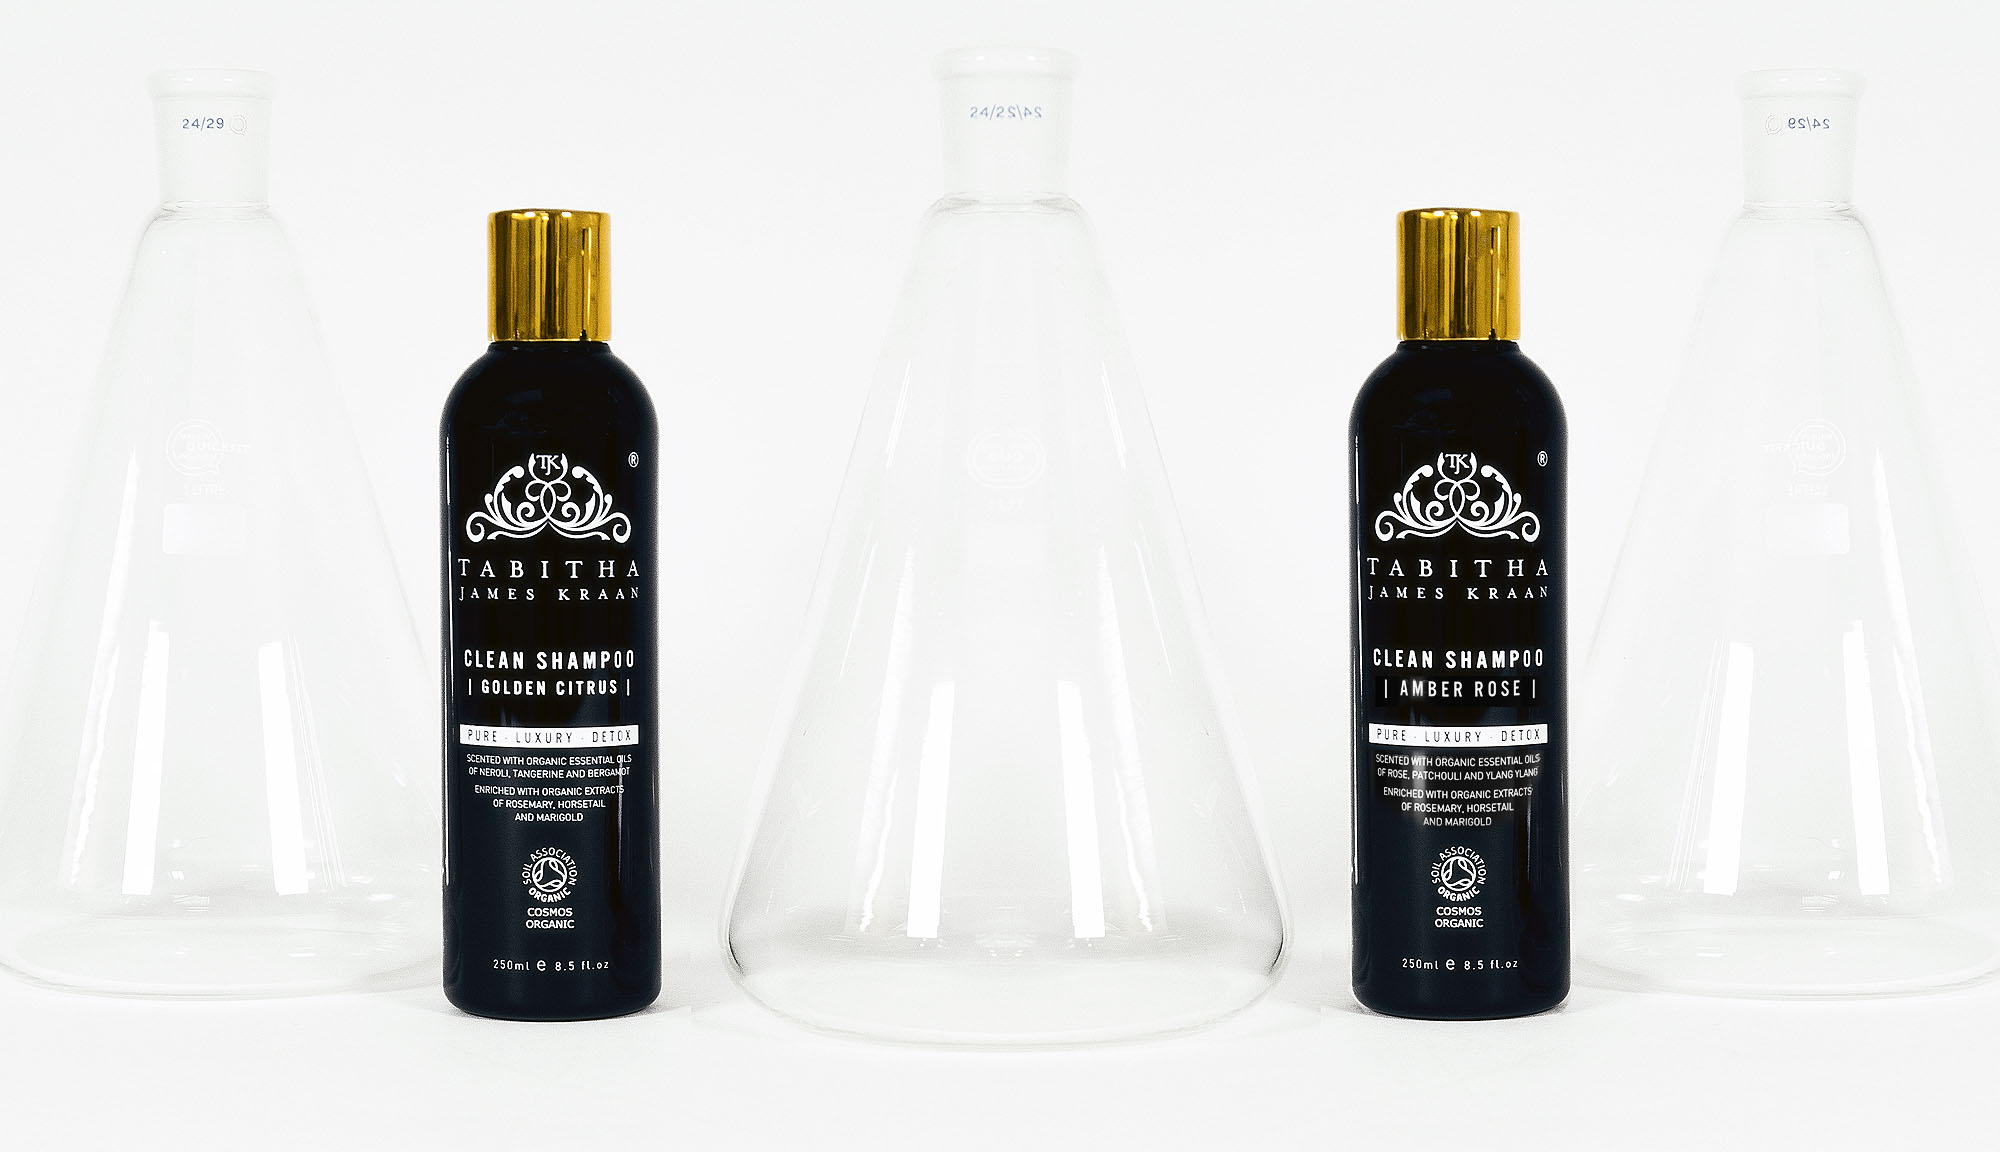 Certified Organic, Professional Shampoo by Tabitha James Kraan